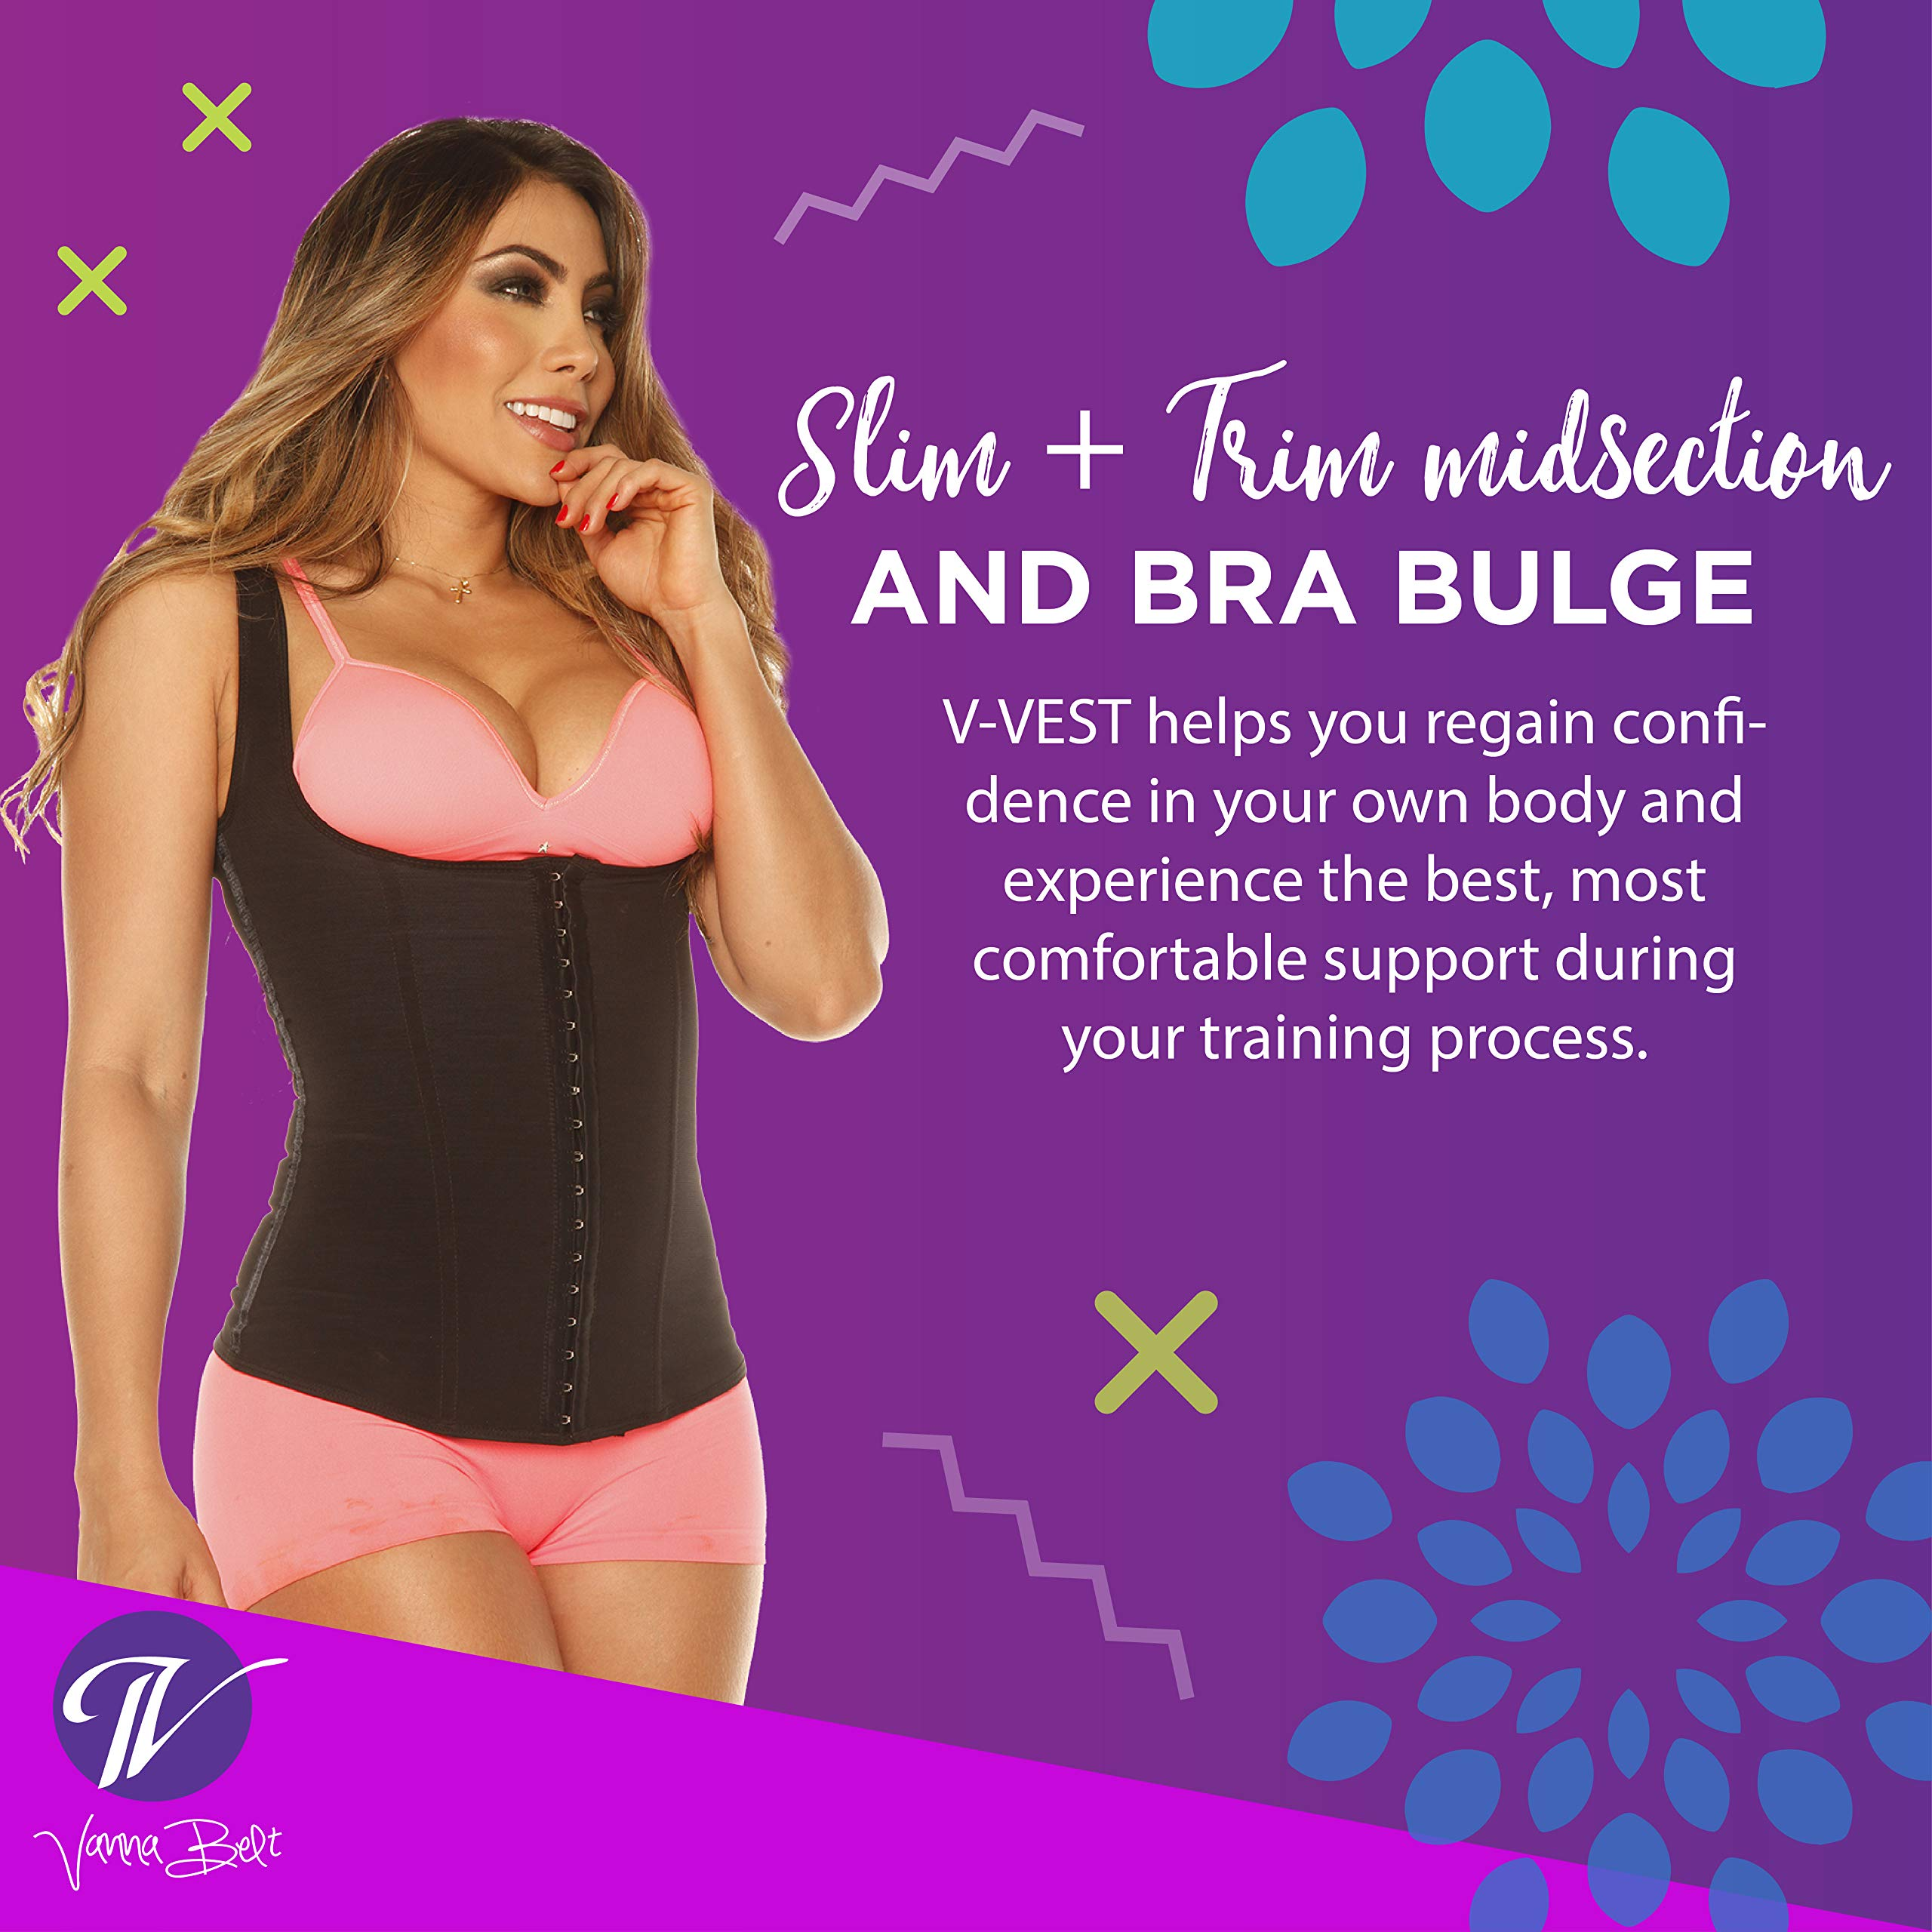 Vanna Belt Waist Trainer V-VEST Waist and Back Trimmer - XXL - Instantly Slims Midsection 2-3 Inches While Wearing Product, Lifts and Supports Busts, Helps Correct Posture by Vanna Belt (Image #3)